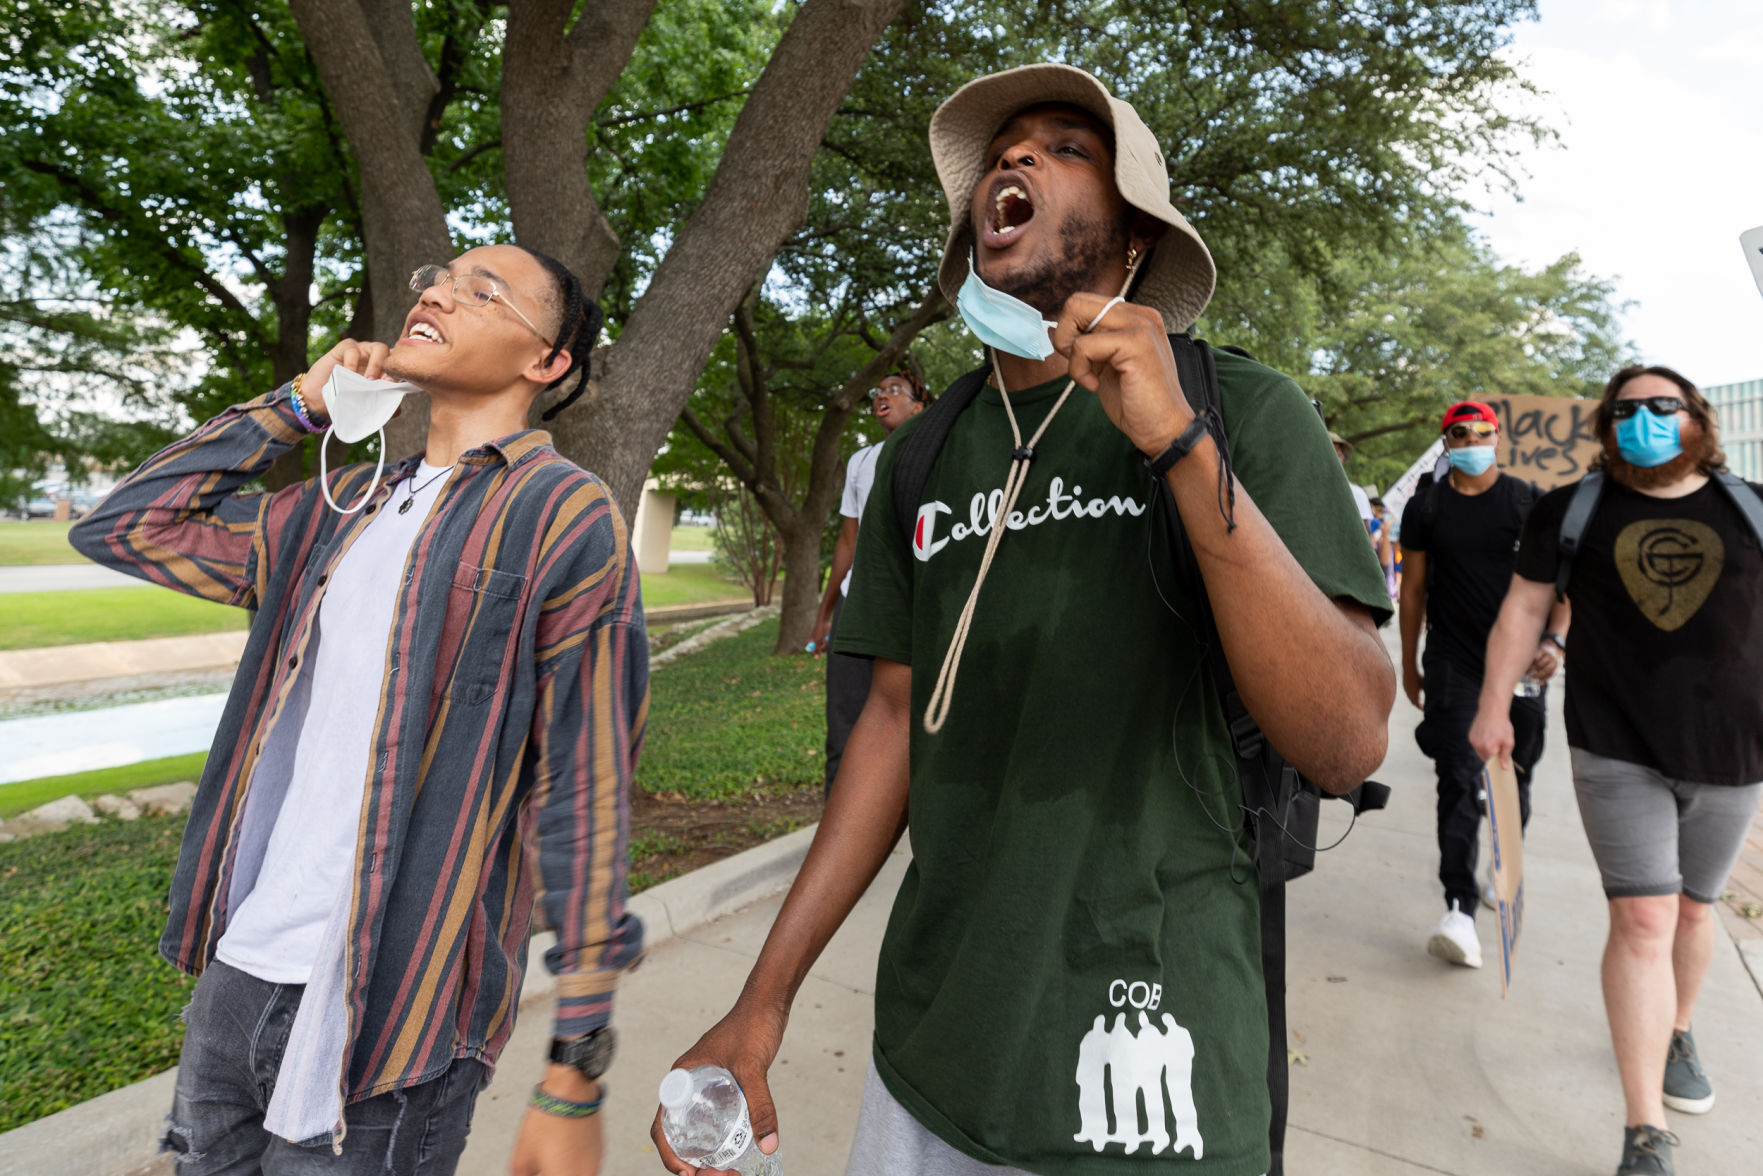 'That could've been me': UTA students march, seek systemic change for black Americans